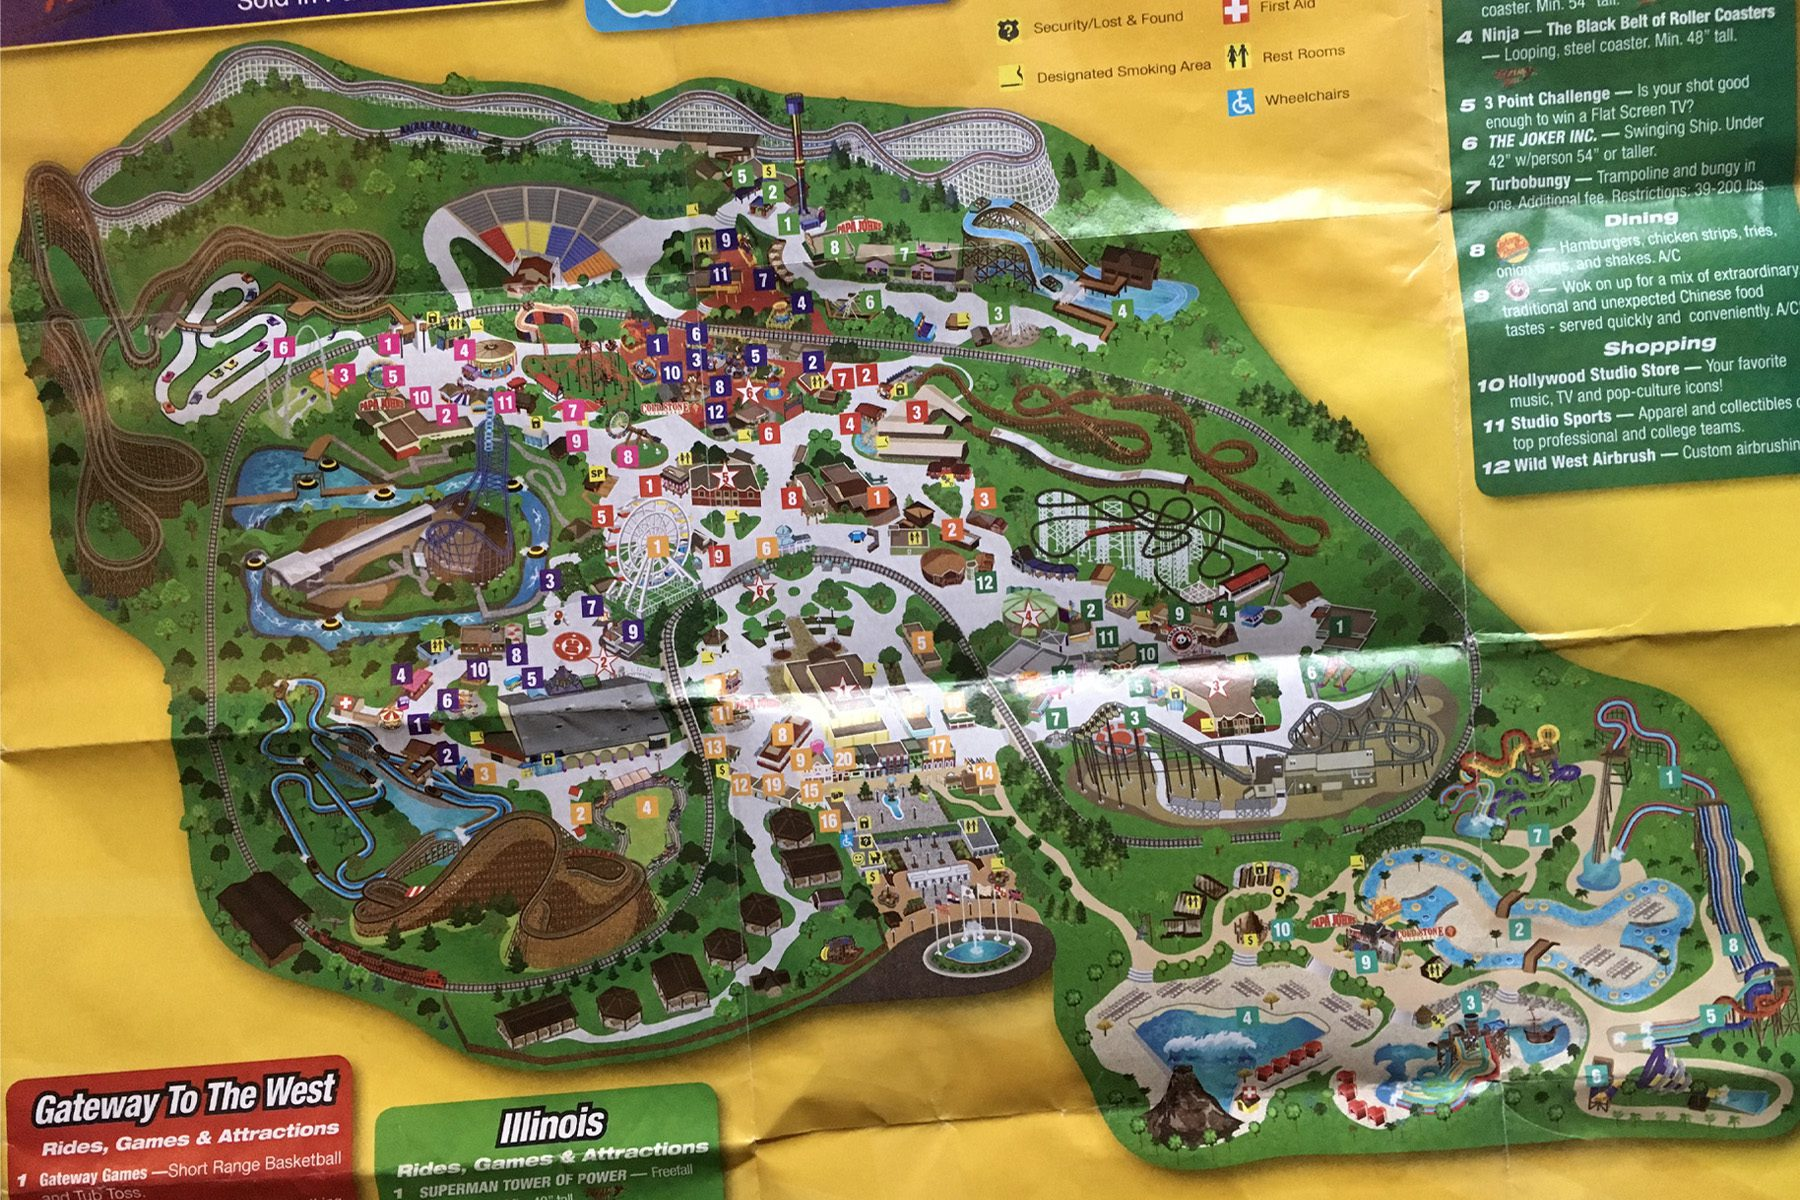 2010 6 flags st. louis map